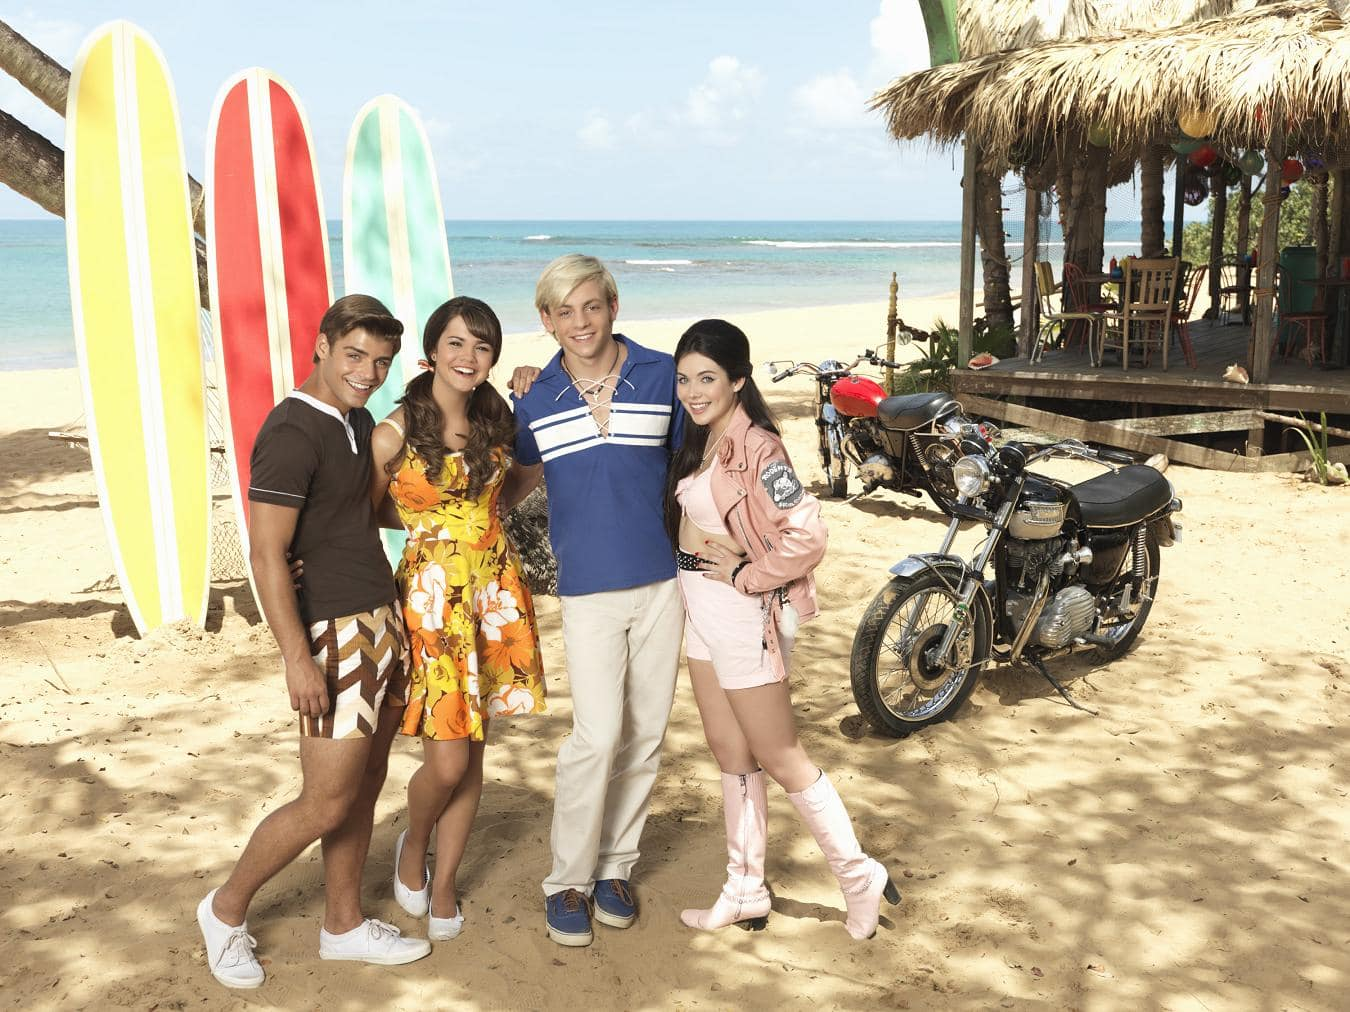 Teenage Beach Movie Toys : Maia mitchell teen beach movie promo shoot ☆favorite